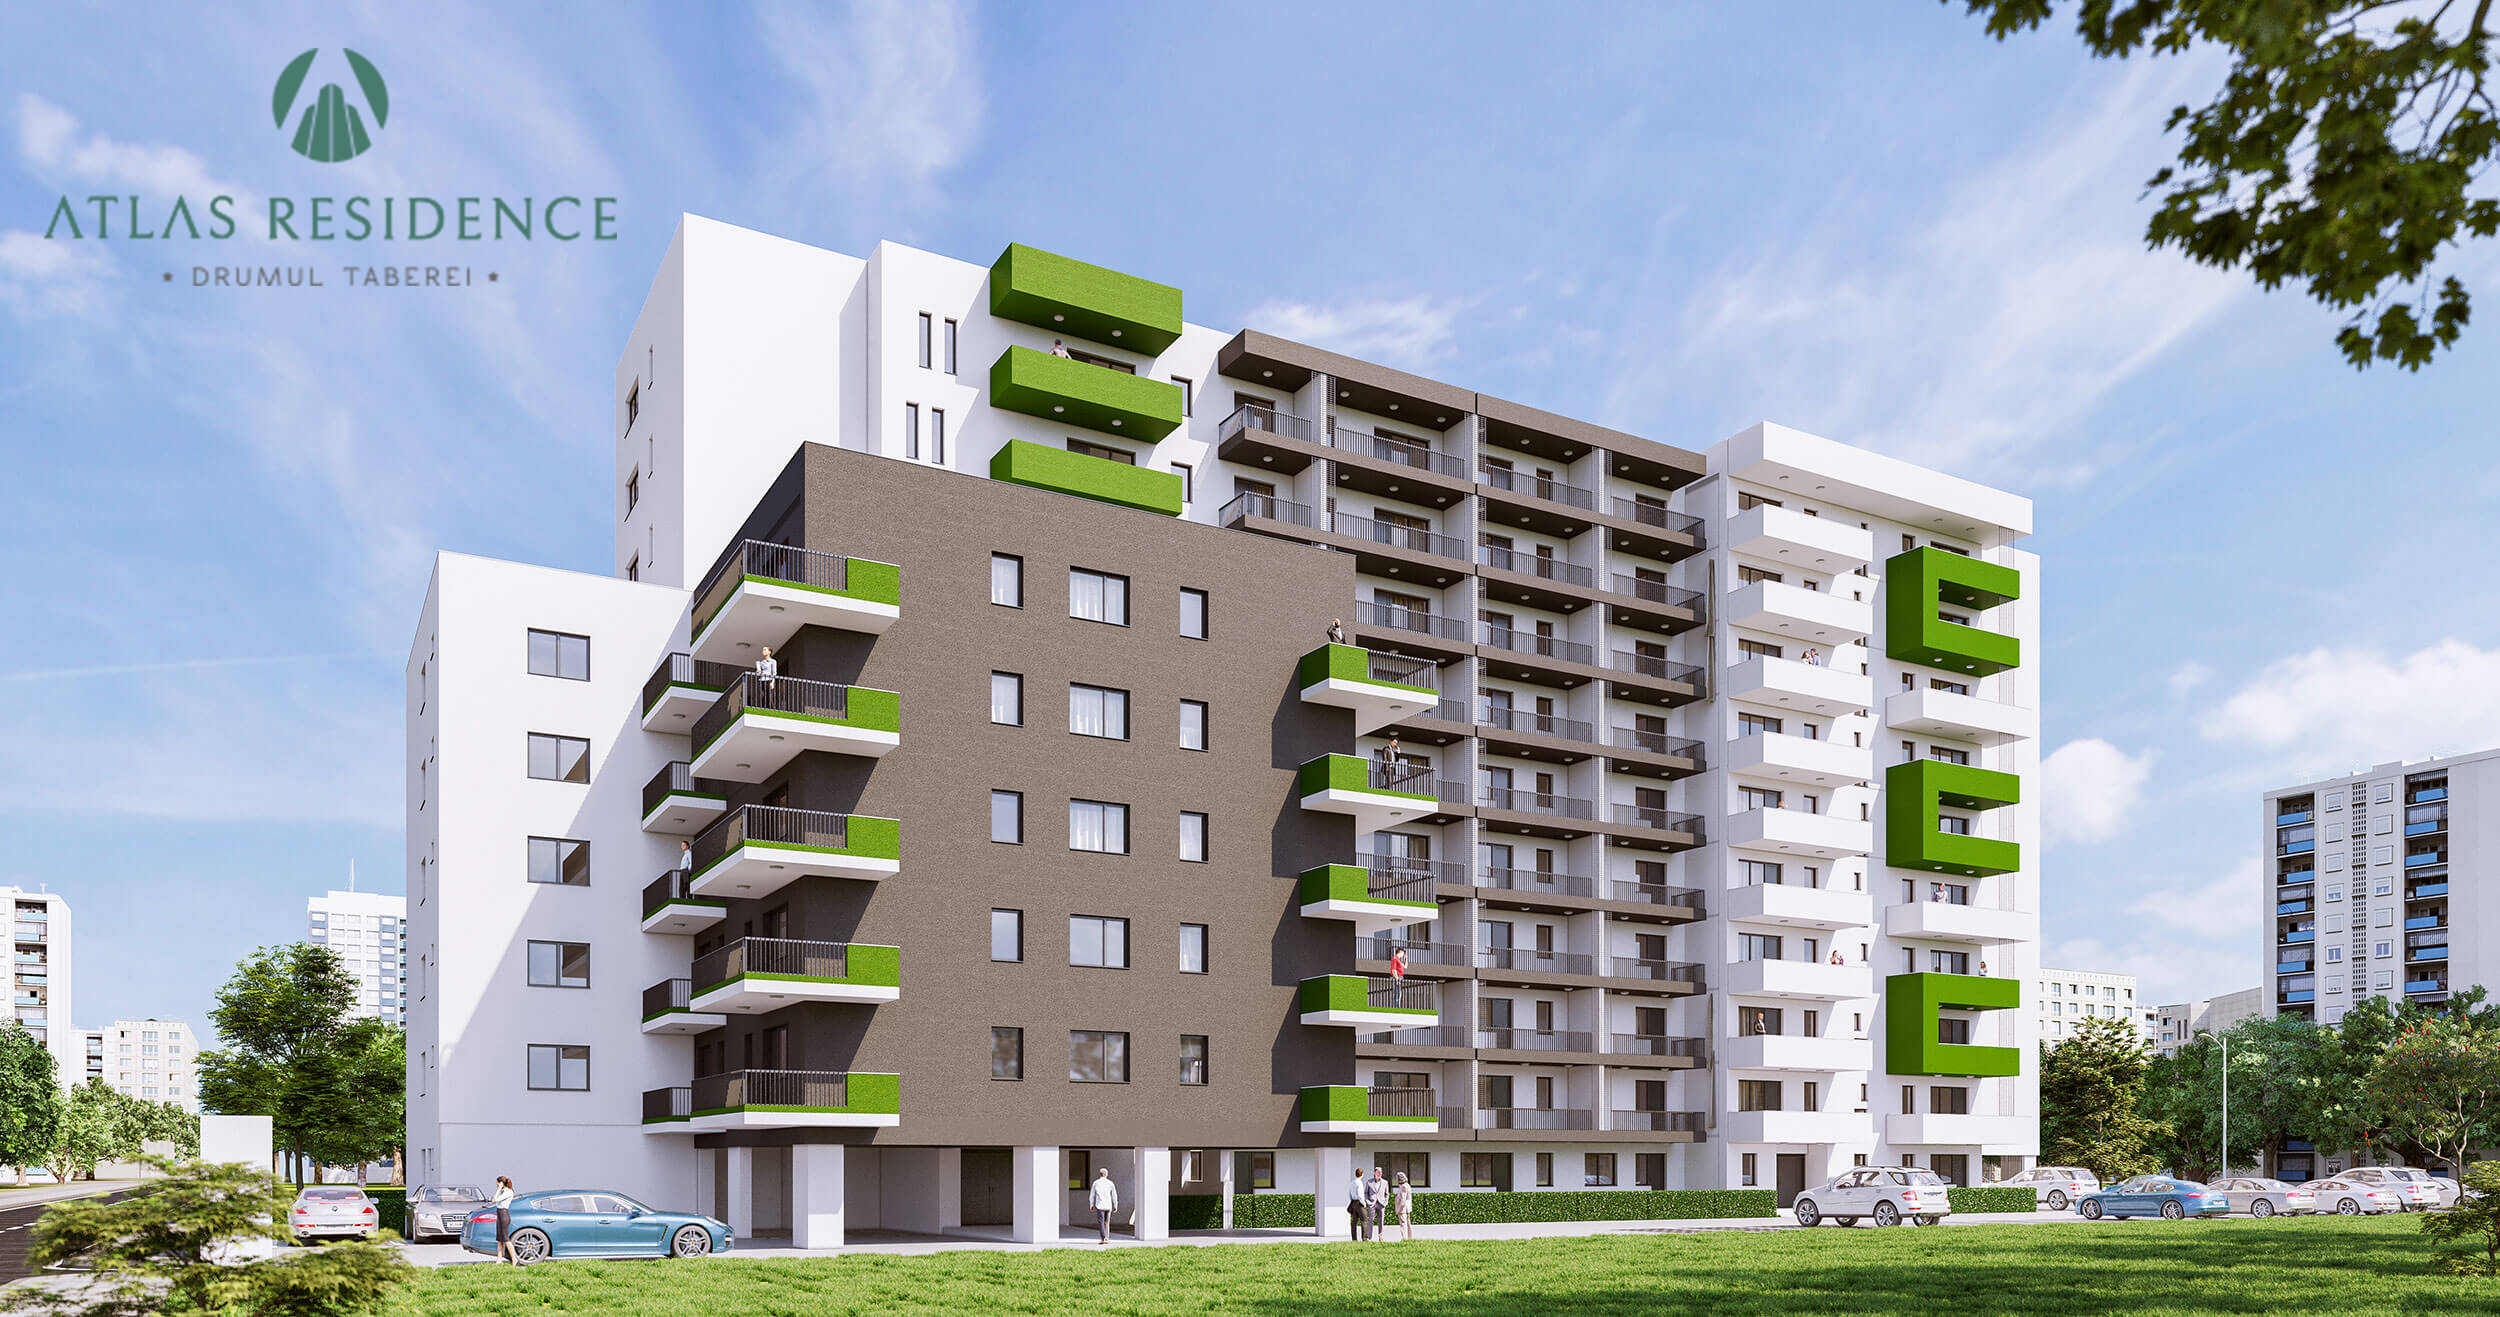 Firma Atlas Residence. Descriere si informatii de contact.